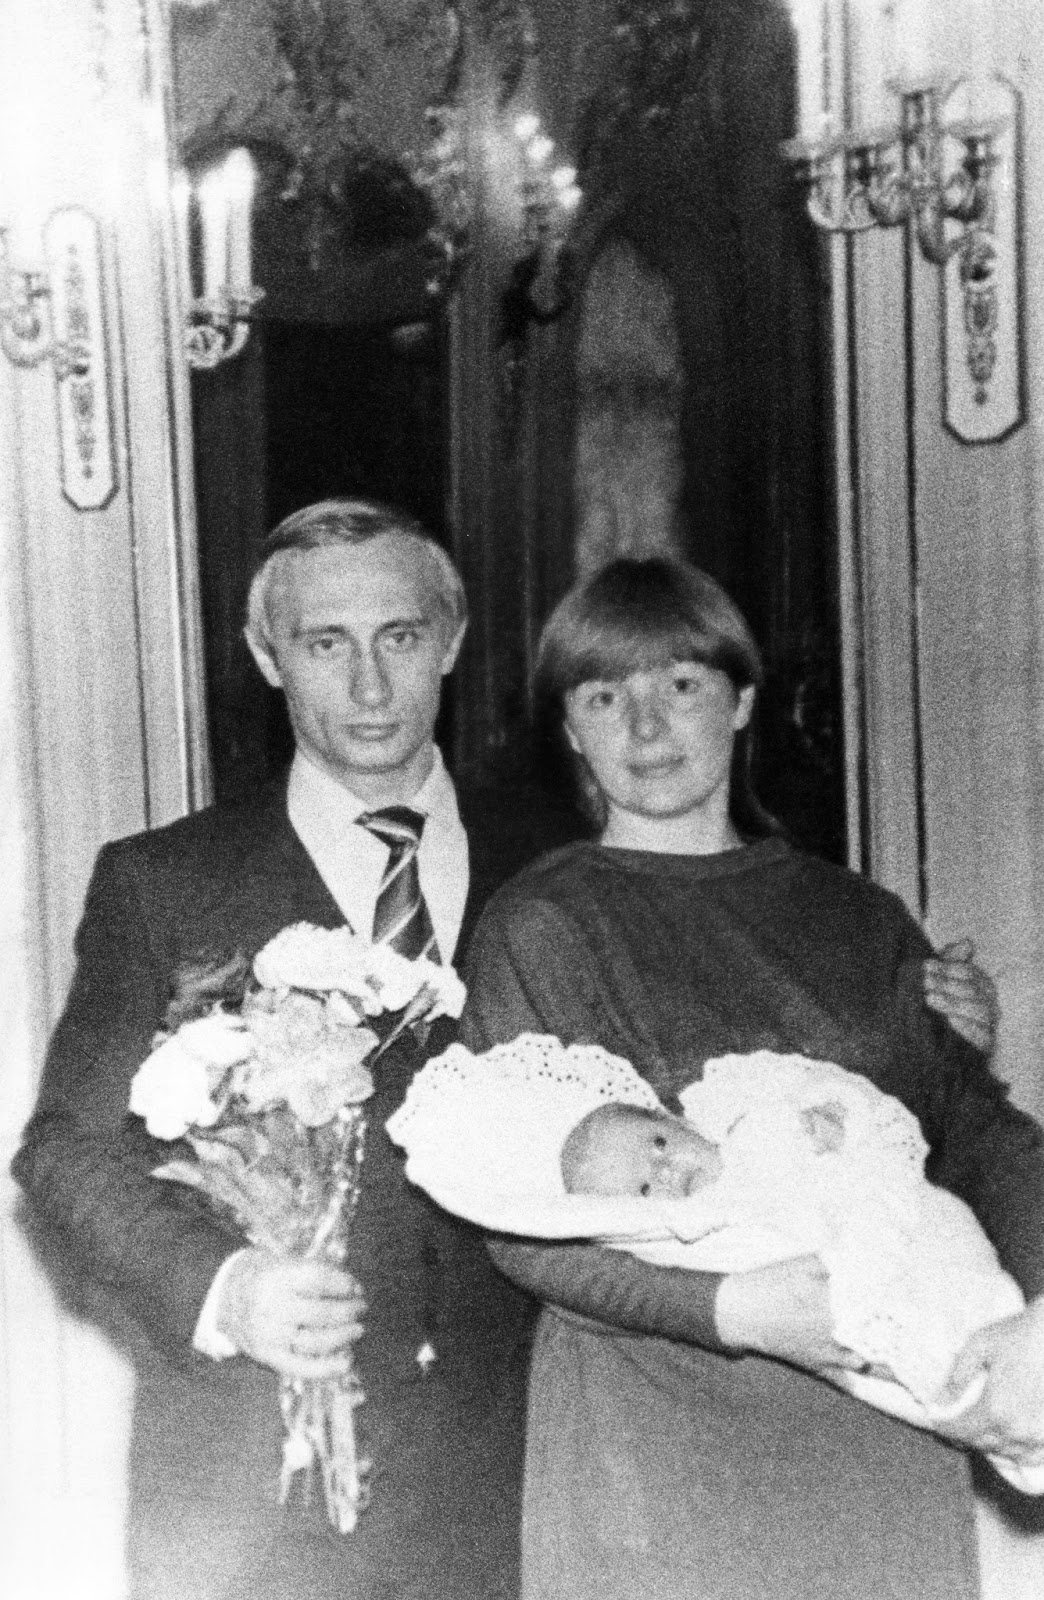 Putin has two daughters but their lives are kept a total secret. They attended college under assumed names and their professions and countries of residence are not known.